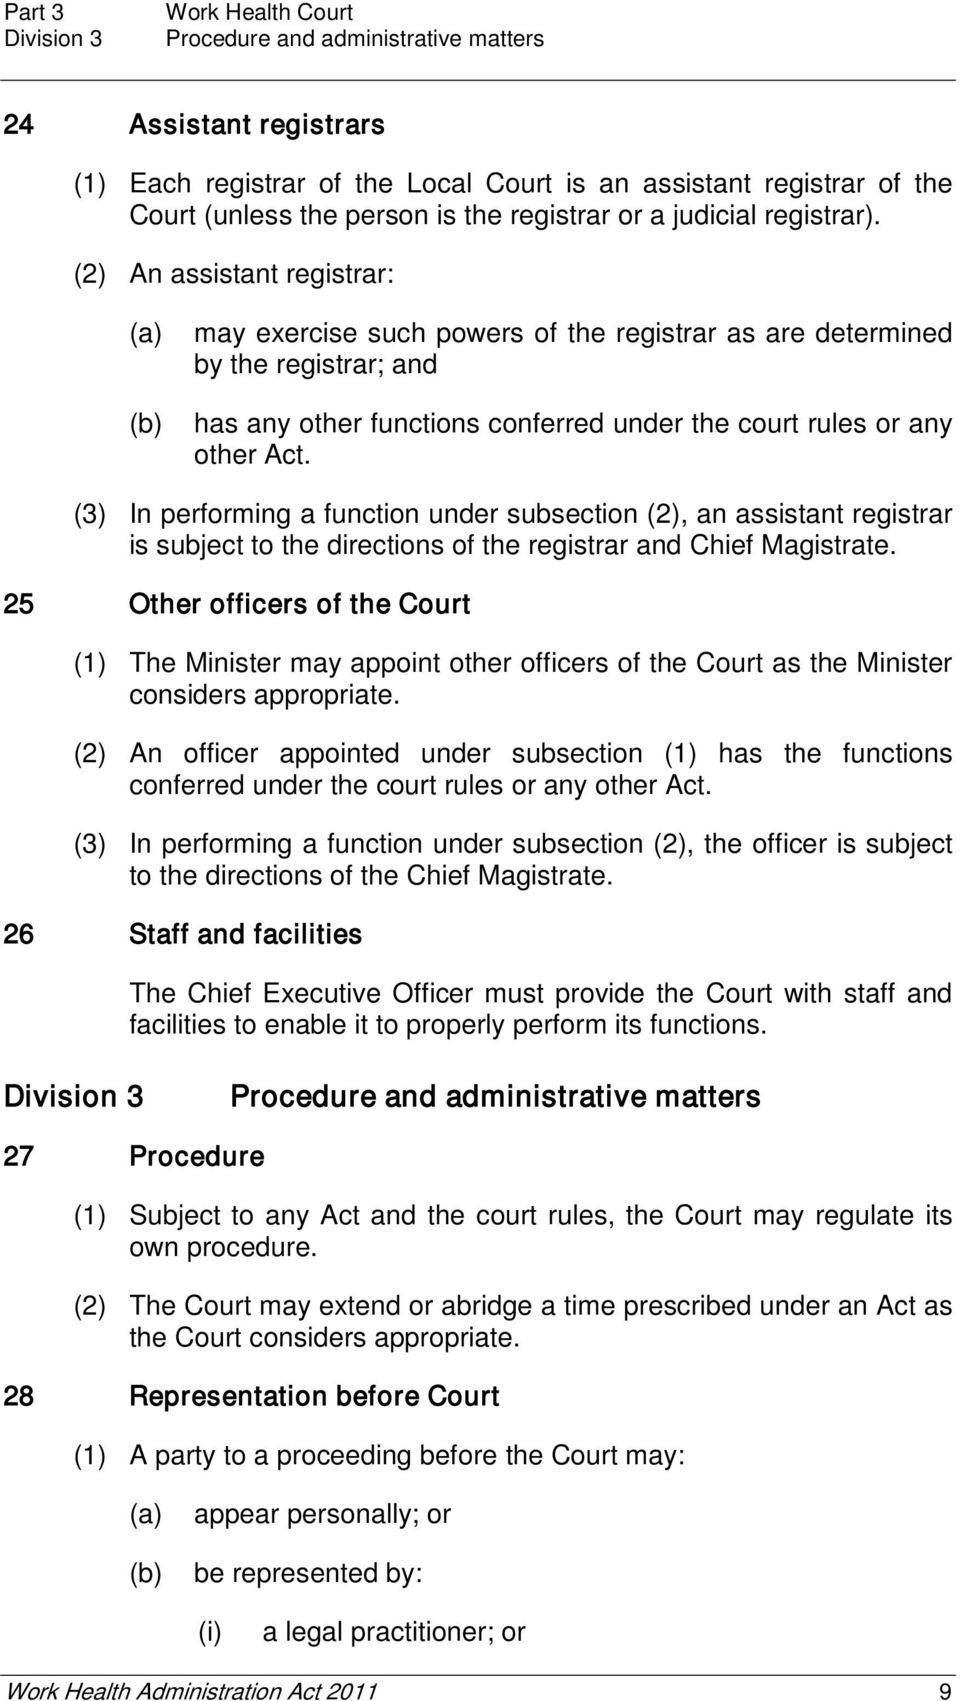 (2) An assistant registrar: may exercise such powers of the registrar as are determined by the registrar; and has any other functions conferred under the court rules or any other Act.